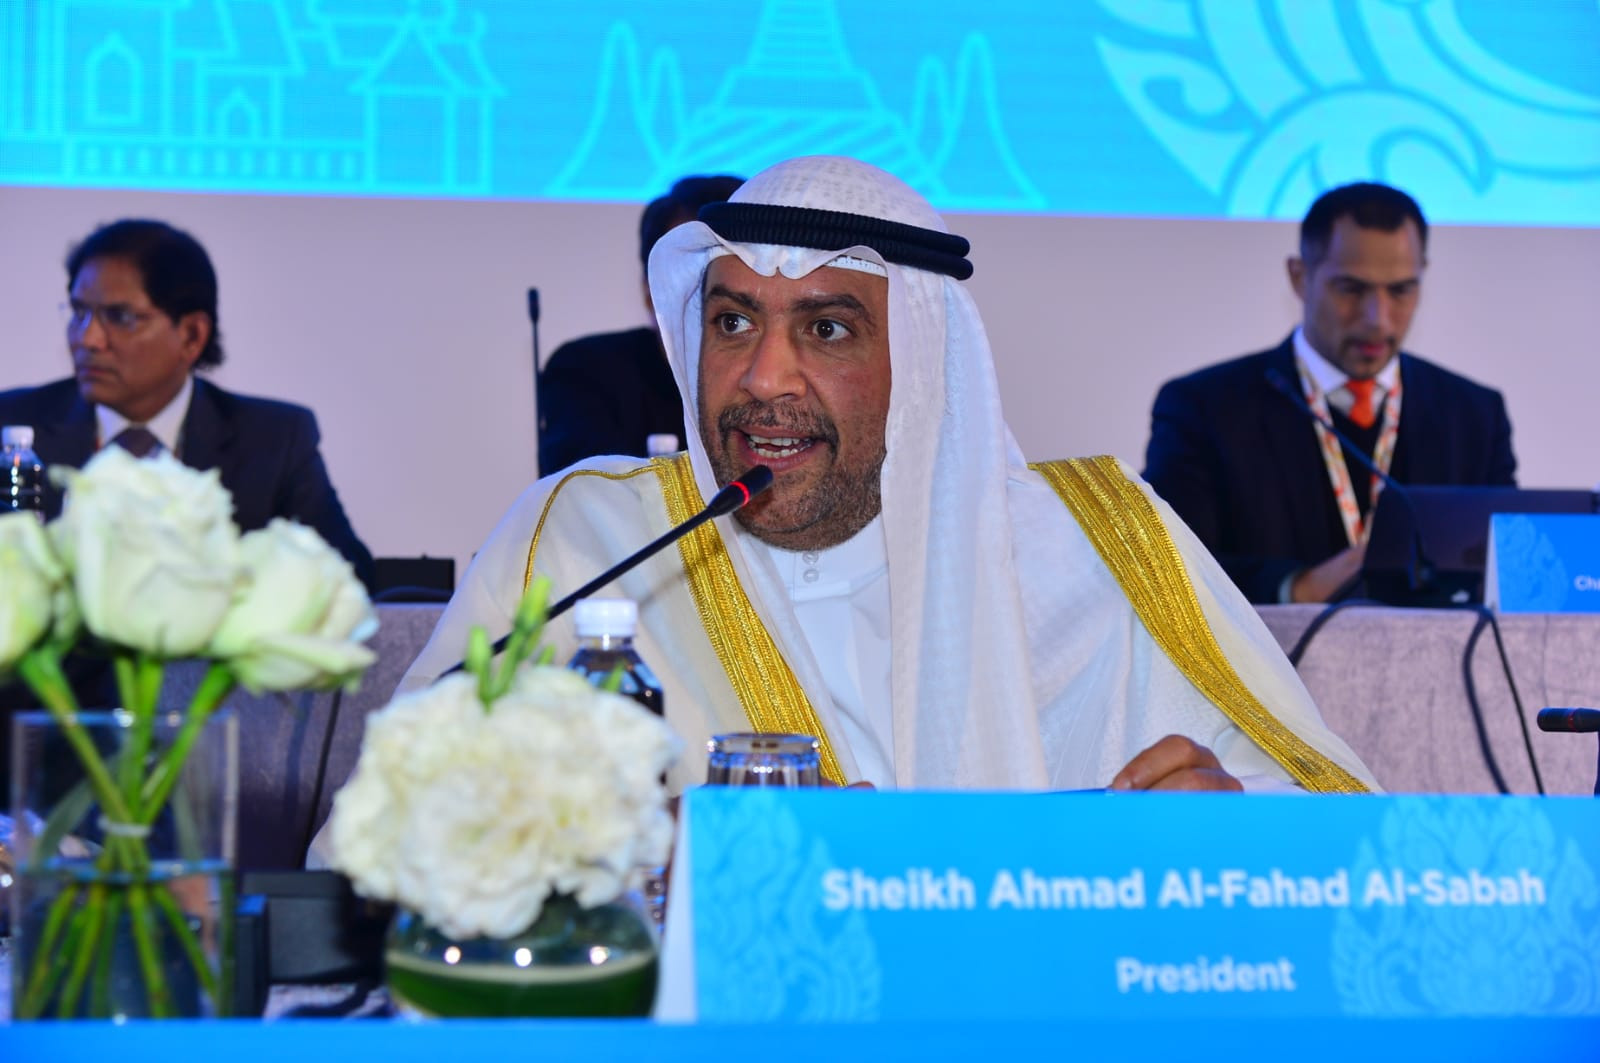 Sheikh Ahmad officially re-elected Olympic Council of Asia President and Takeda vice-president even though both at centre of controversy